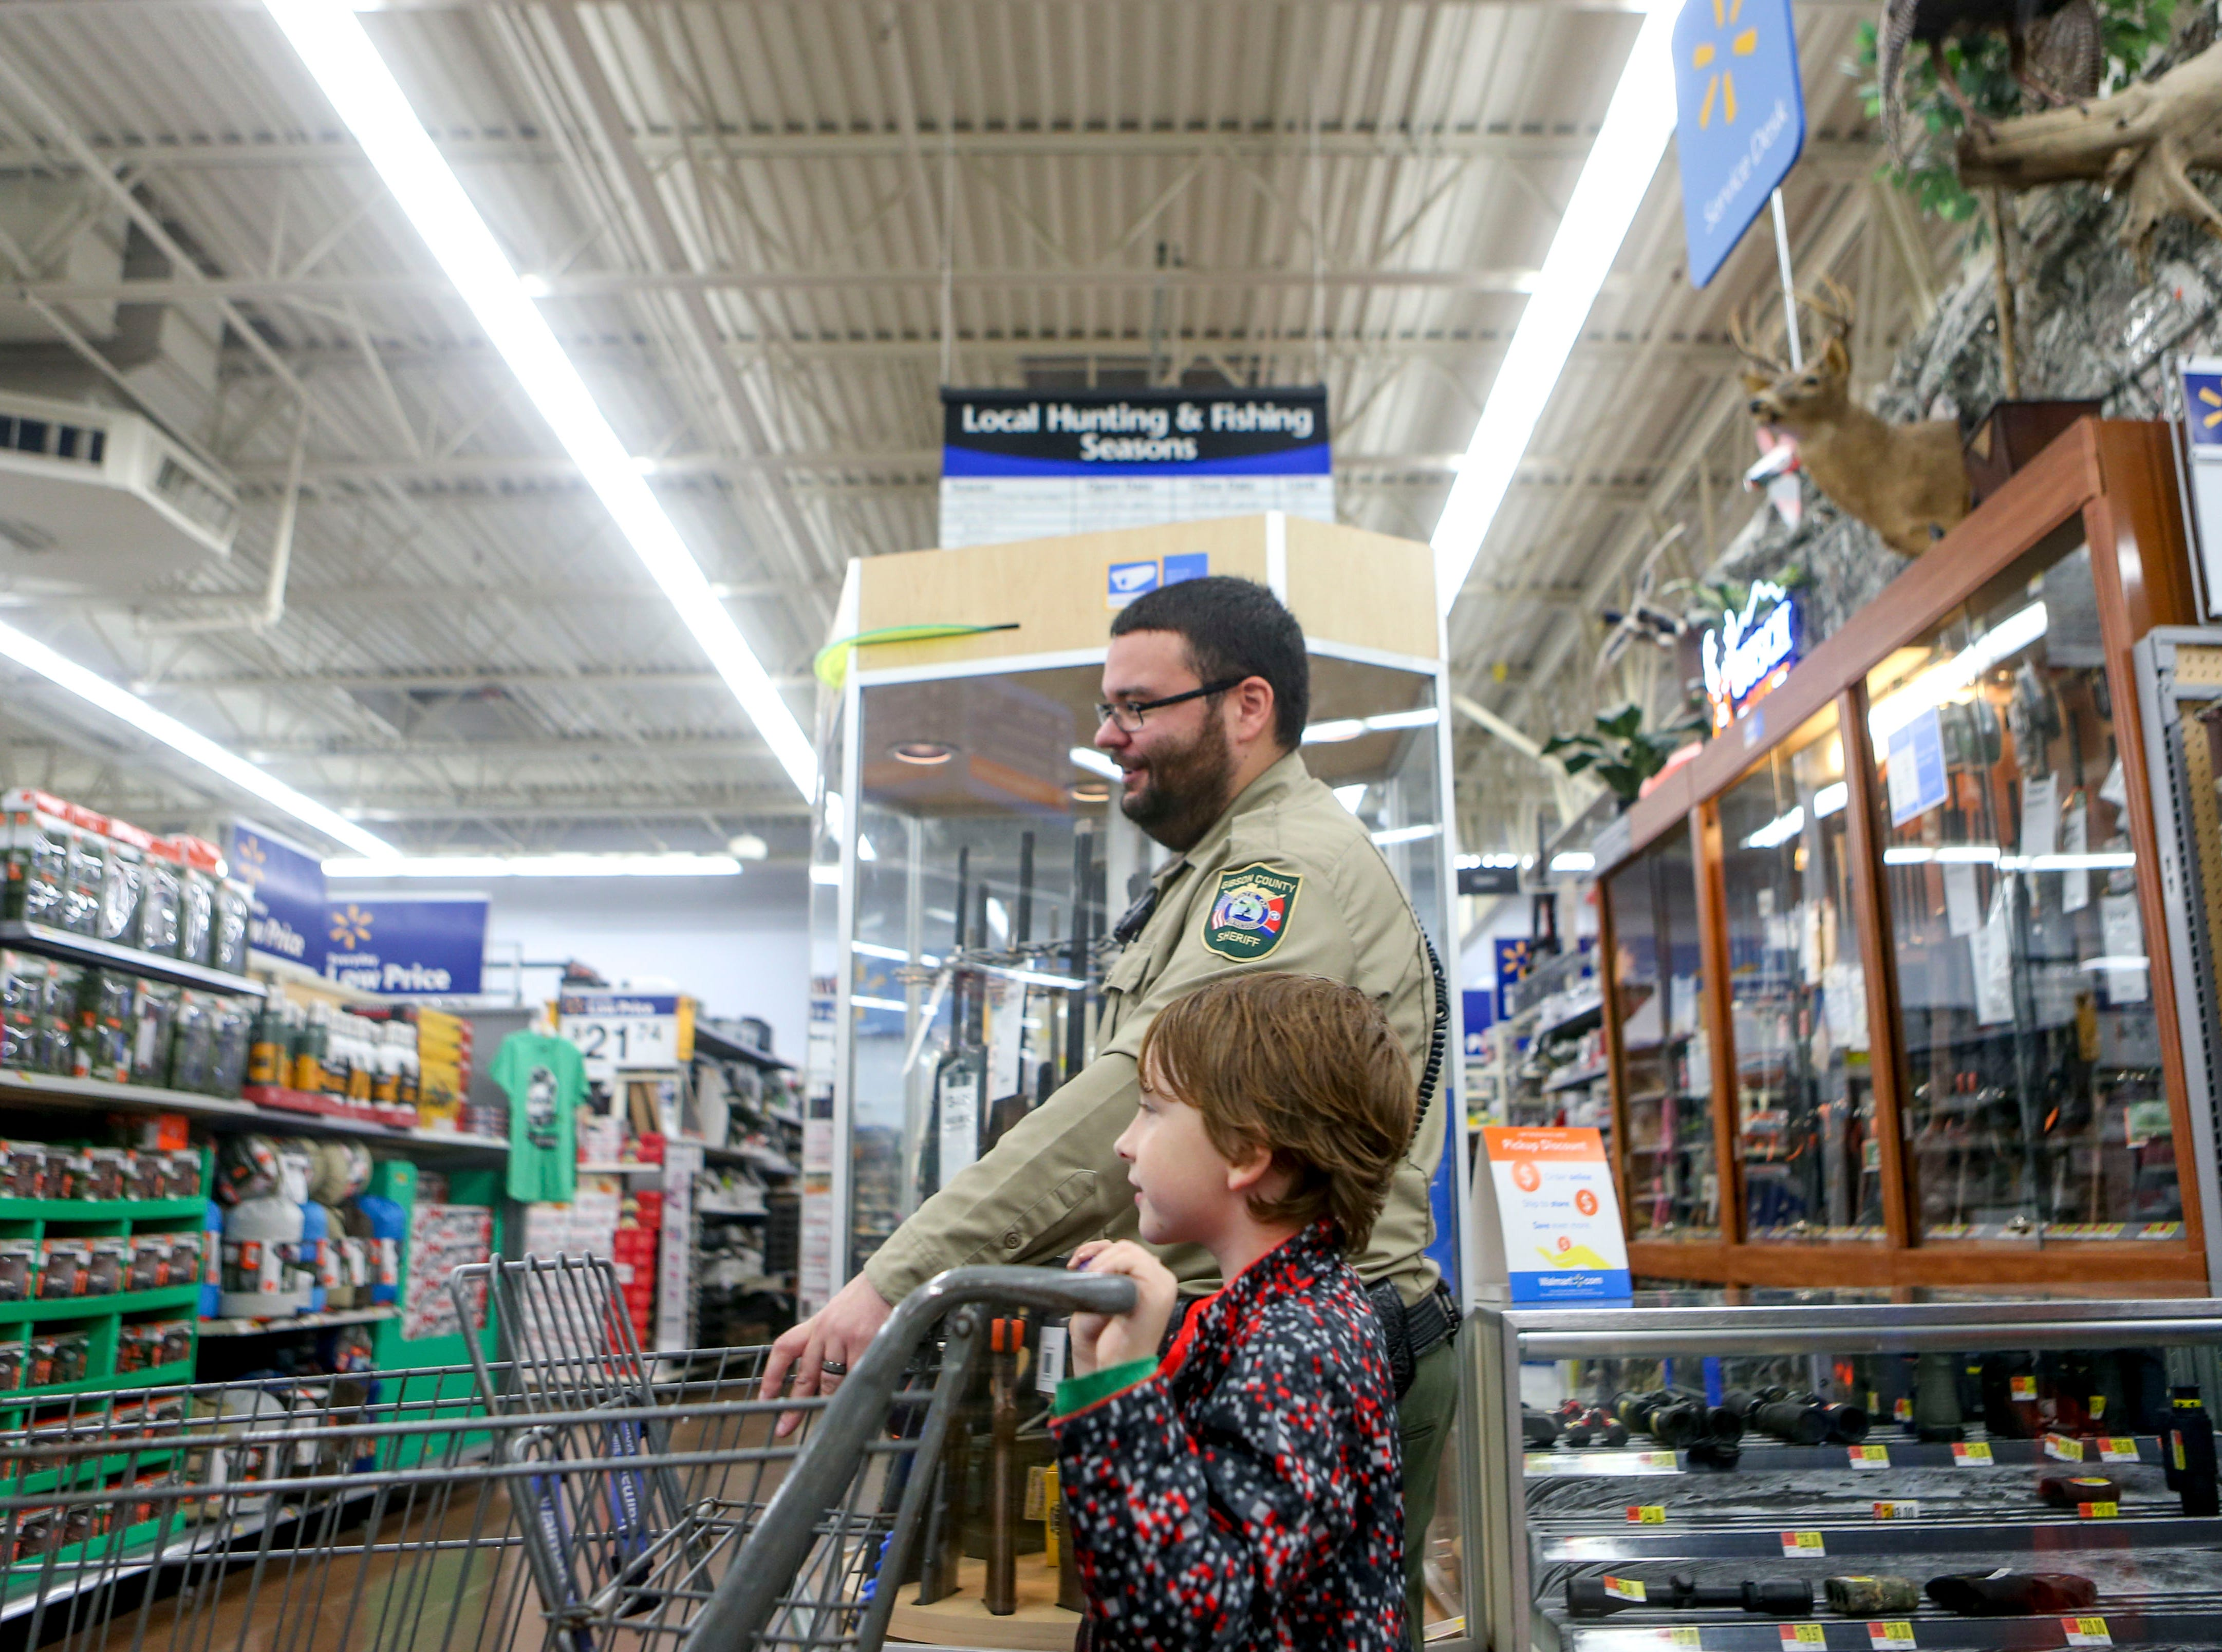 A Sheriff's deputy and his partner walk through the aisles shopping for various items during shopping time for the annual Shop with a Cop program at Walmart in Milan, Tenn., on Thursday, Dec. 13, 2018.